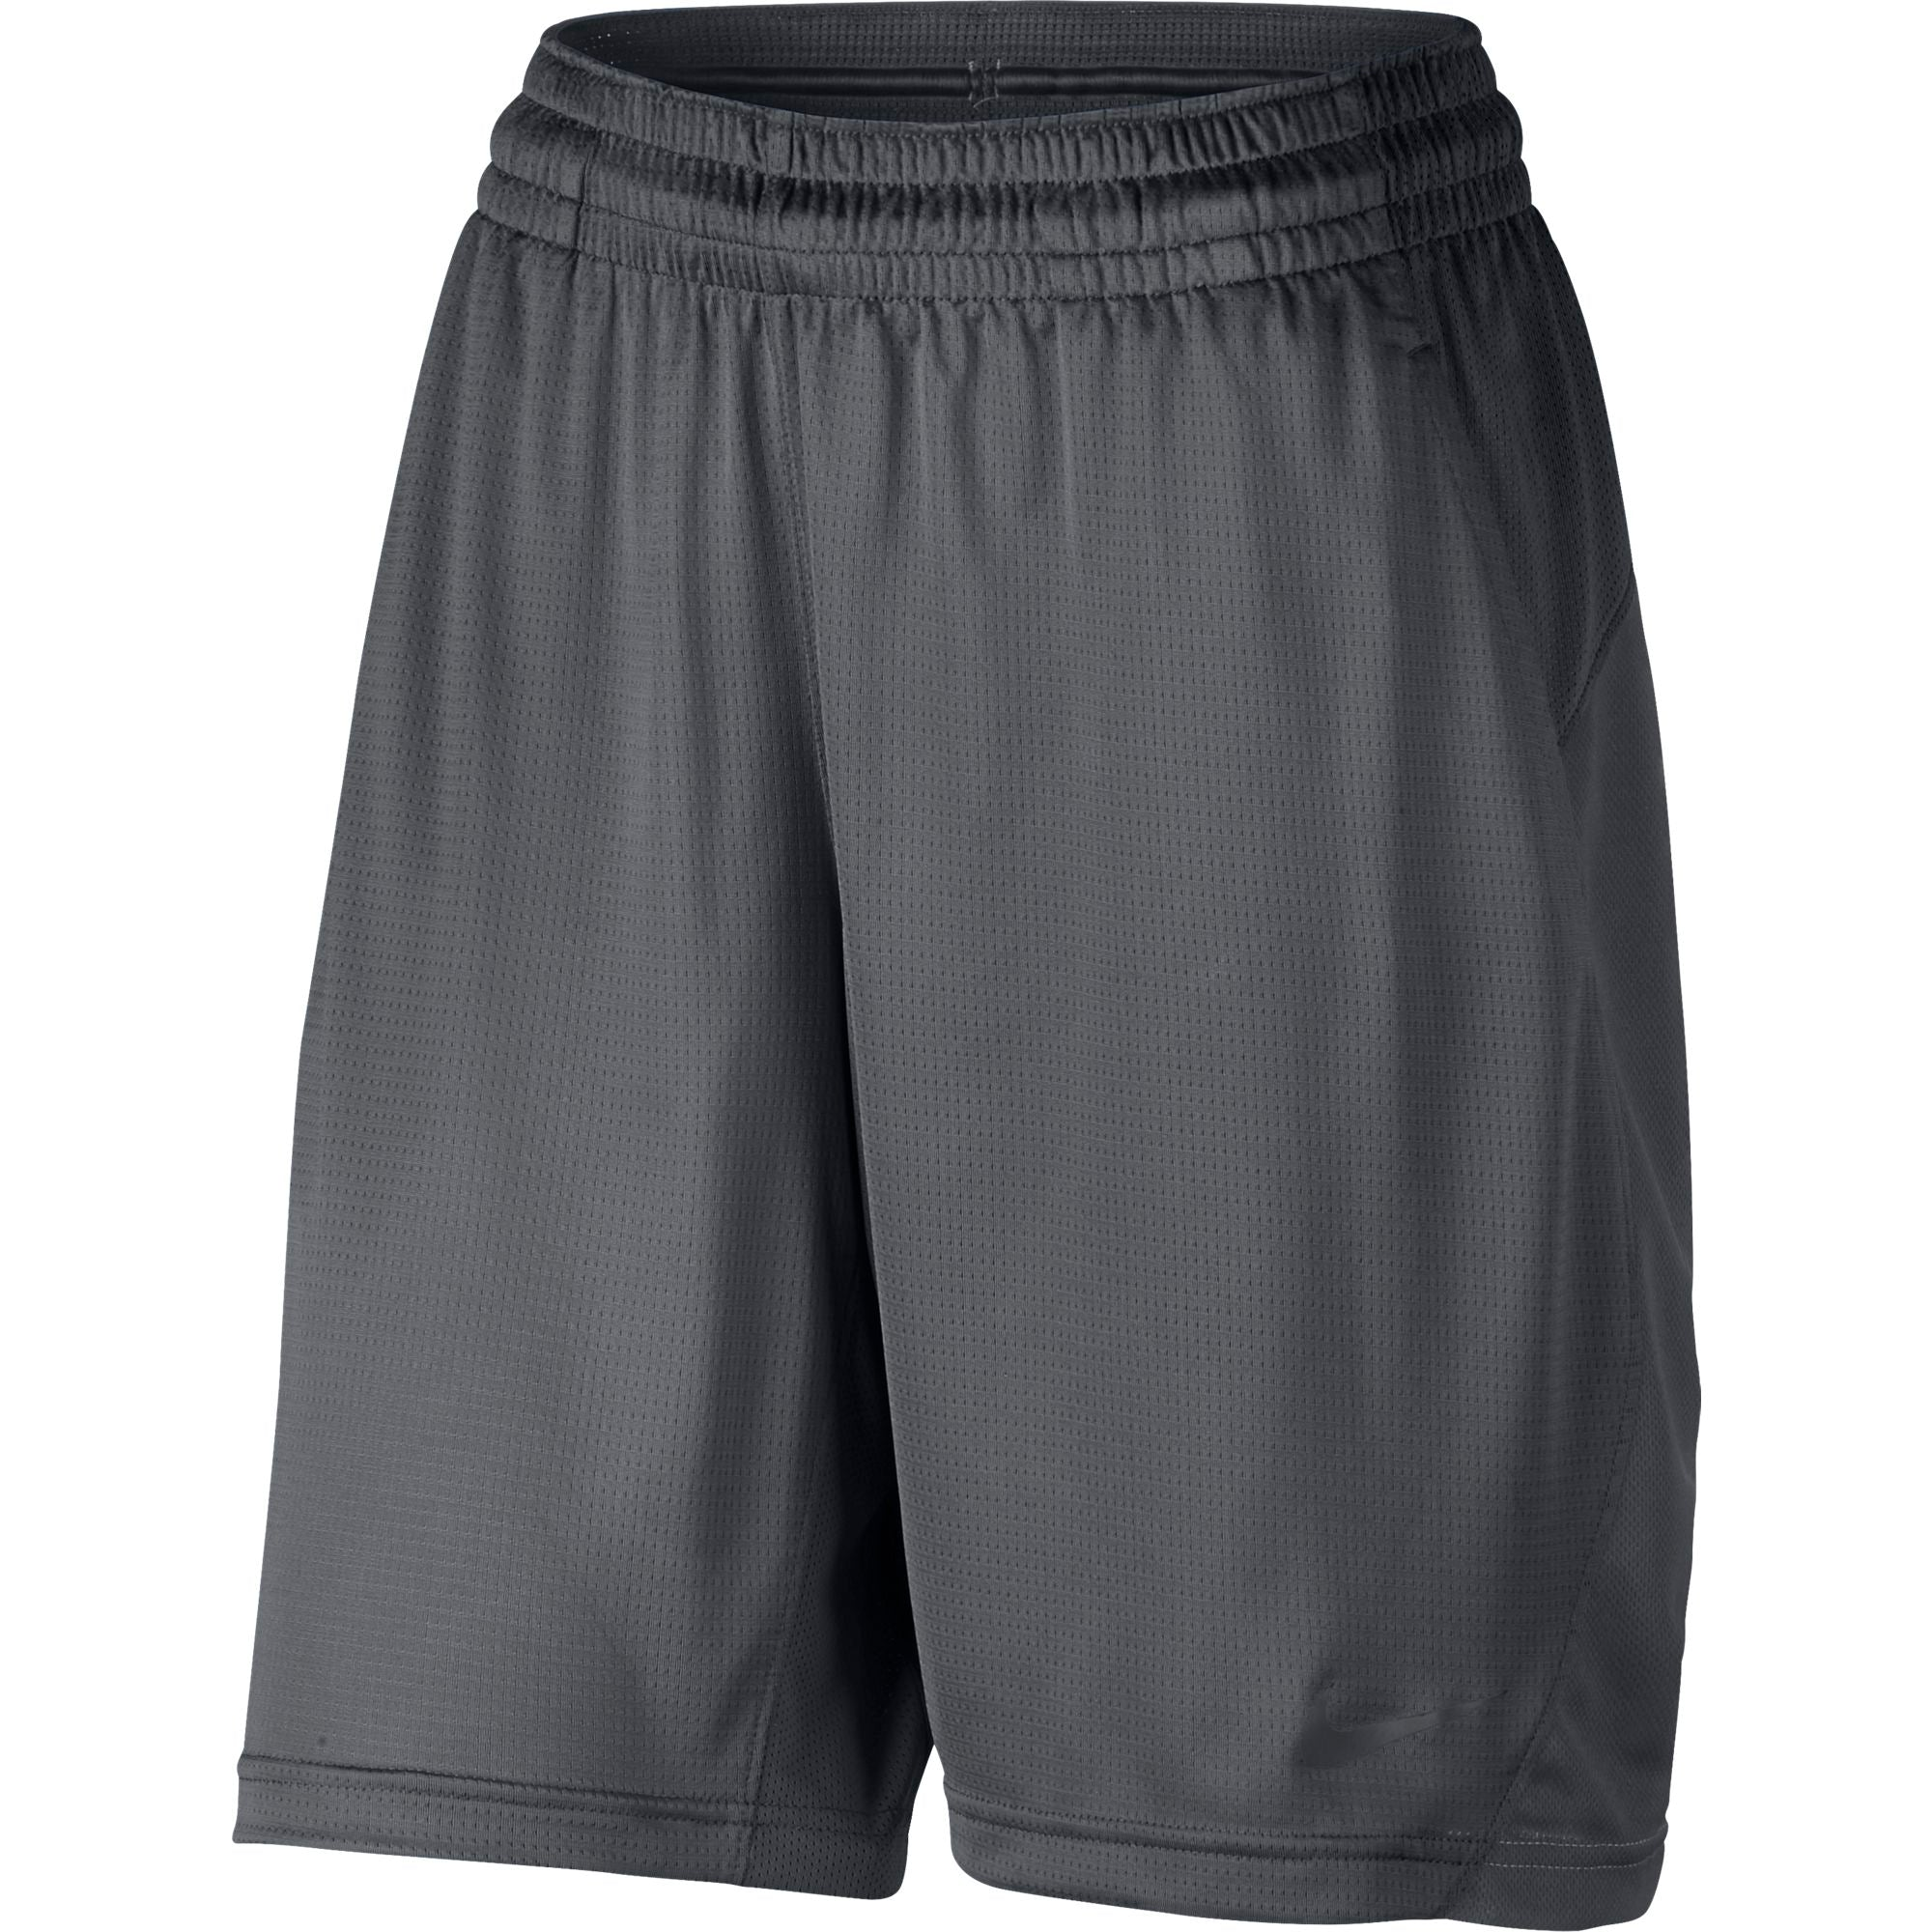 Nike Womens Basketball Shorts - NK-813941-021